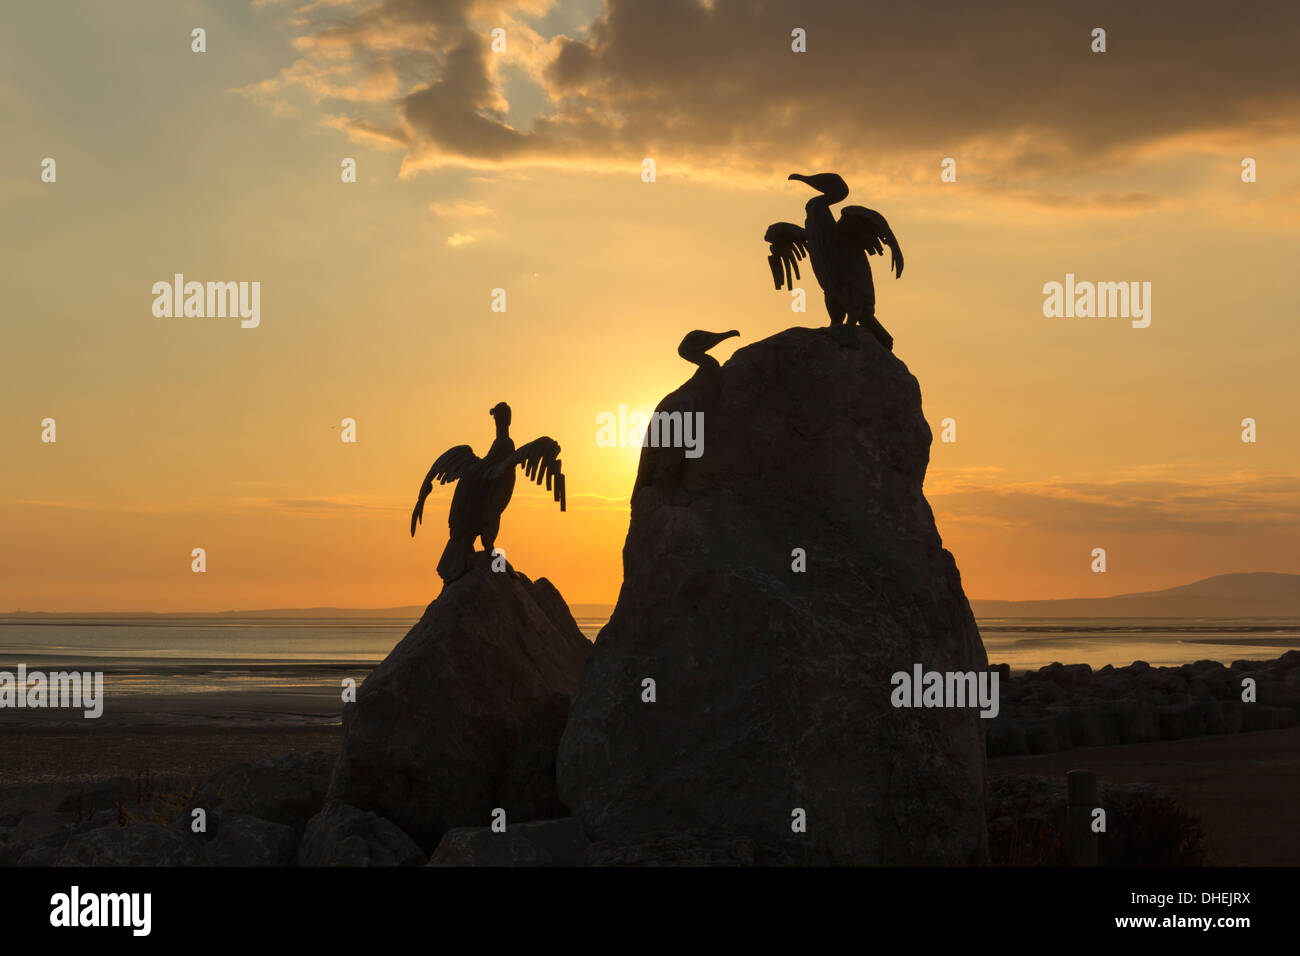 Cormorant statues on the seafront in Morecambe, Lancashire, silhouetted by the setting sun, part of the artwork 'Tern Project'. - Stock Image